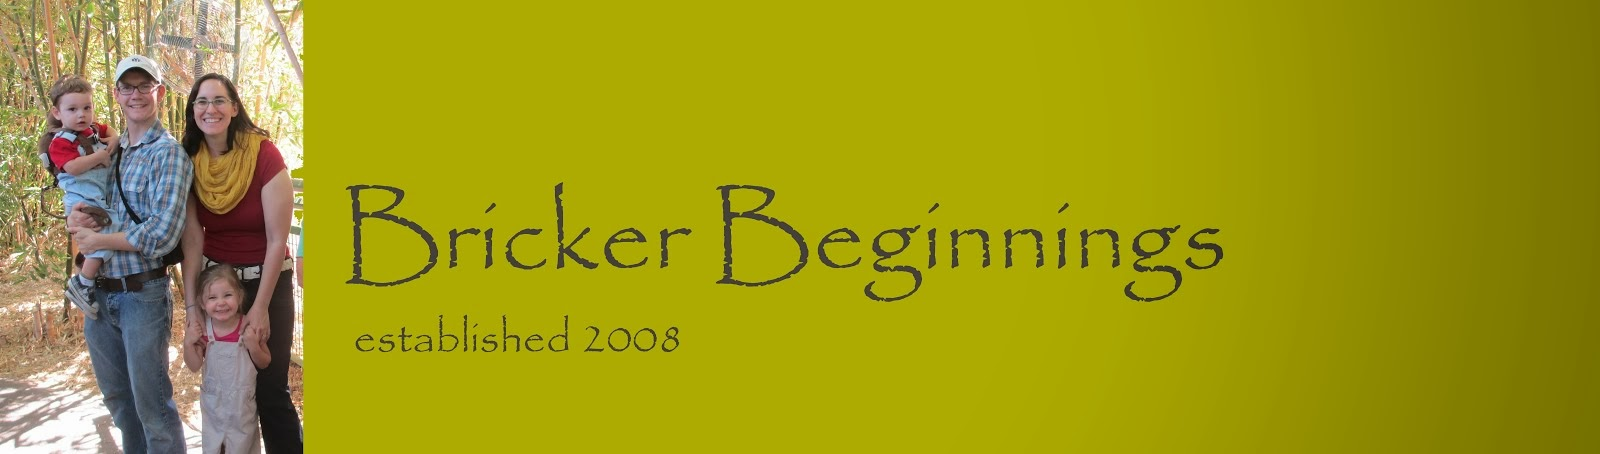 Bricker Beginnings